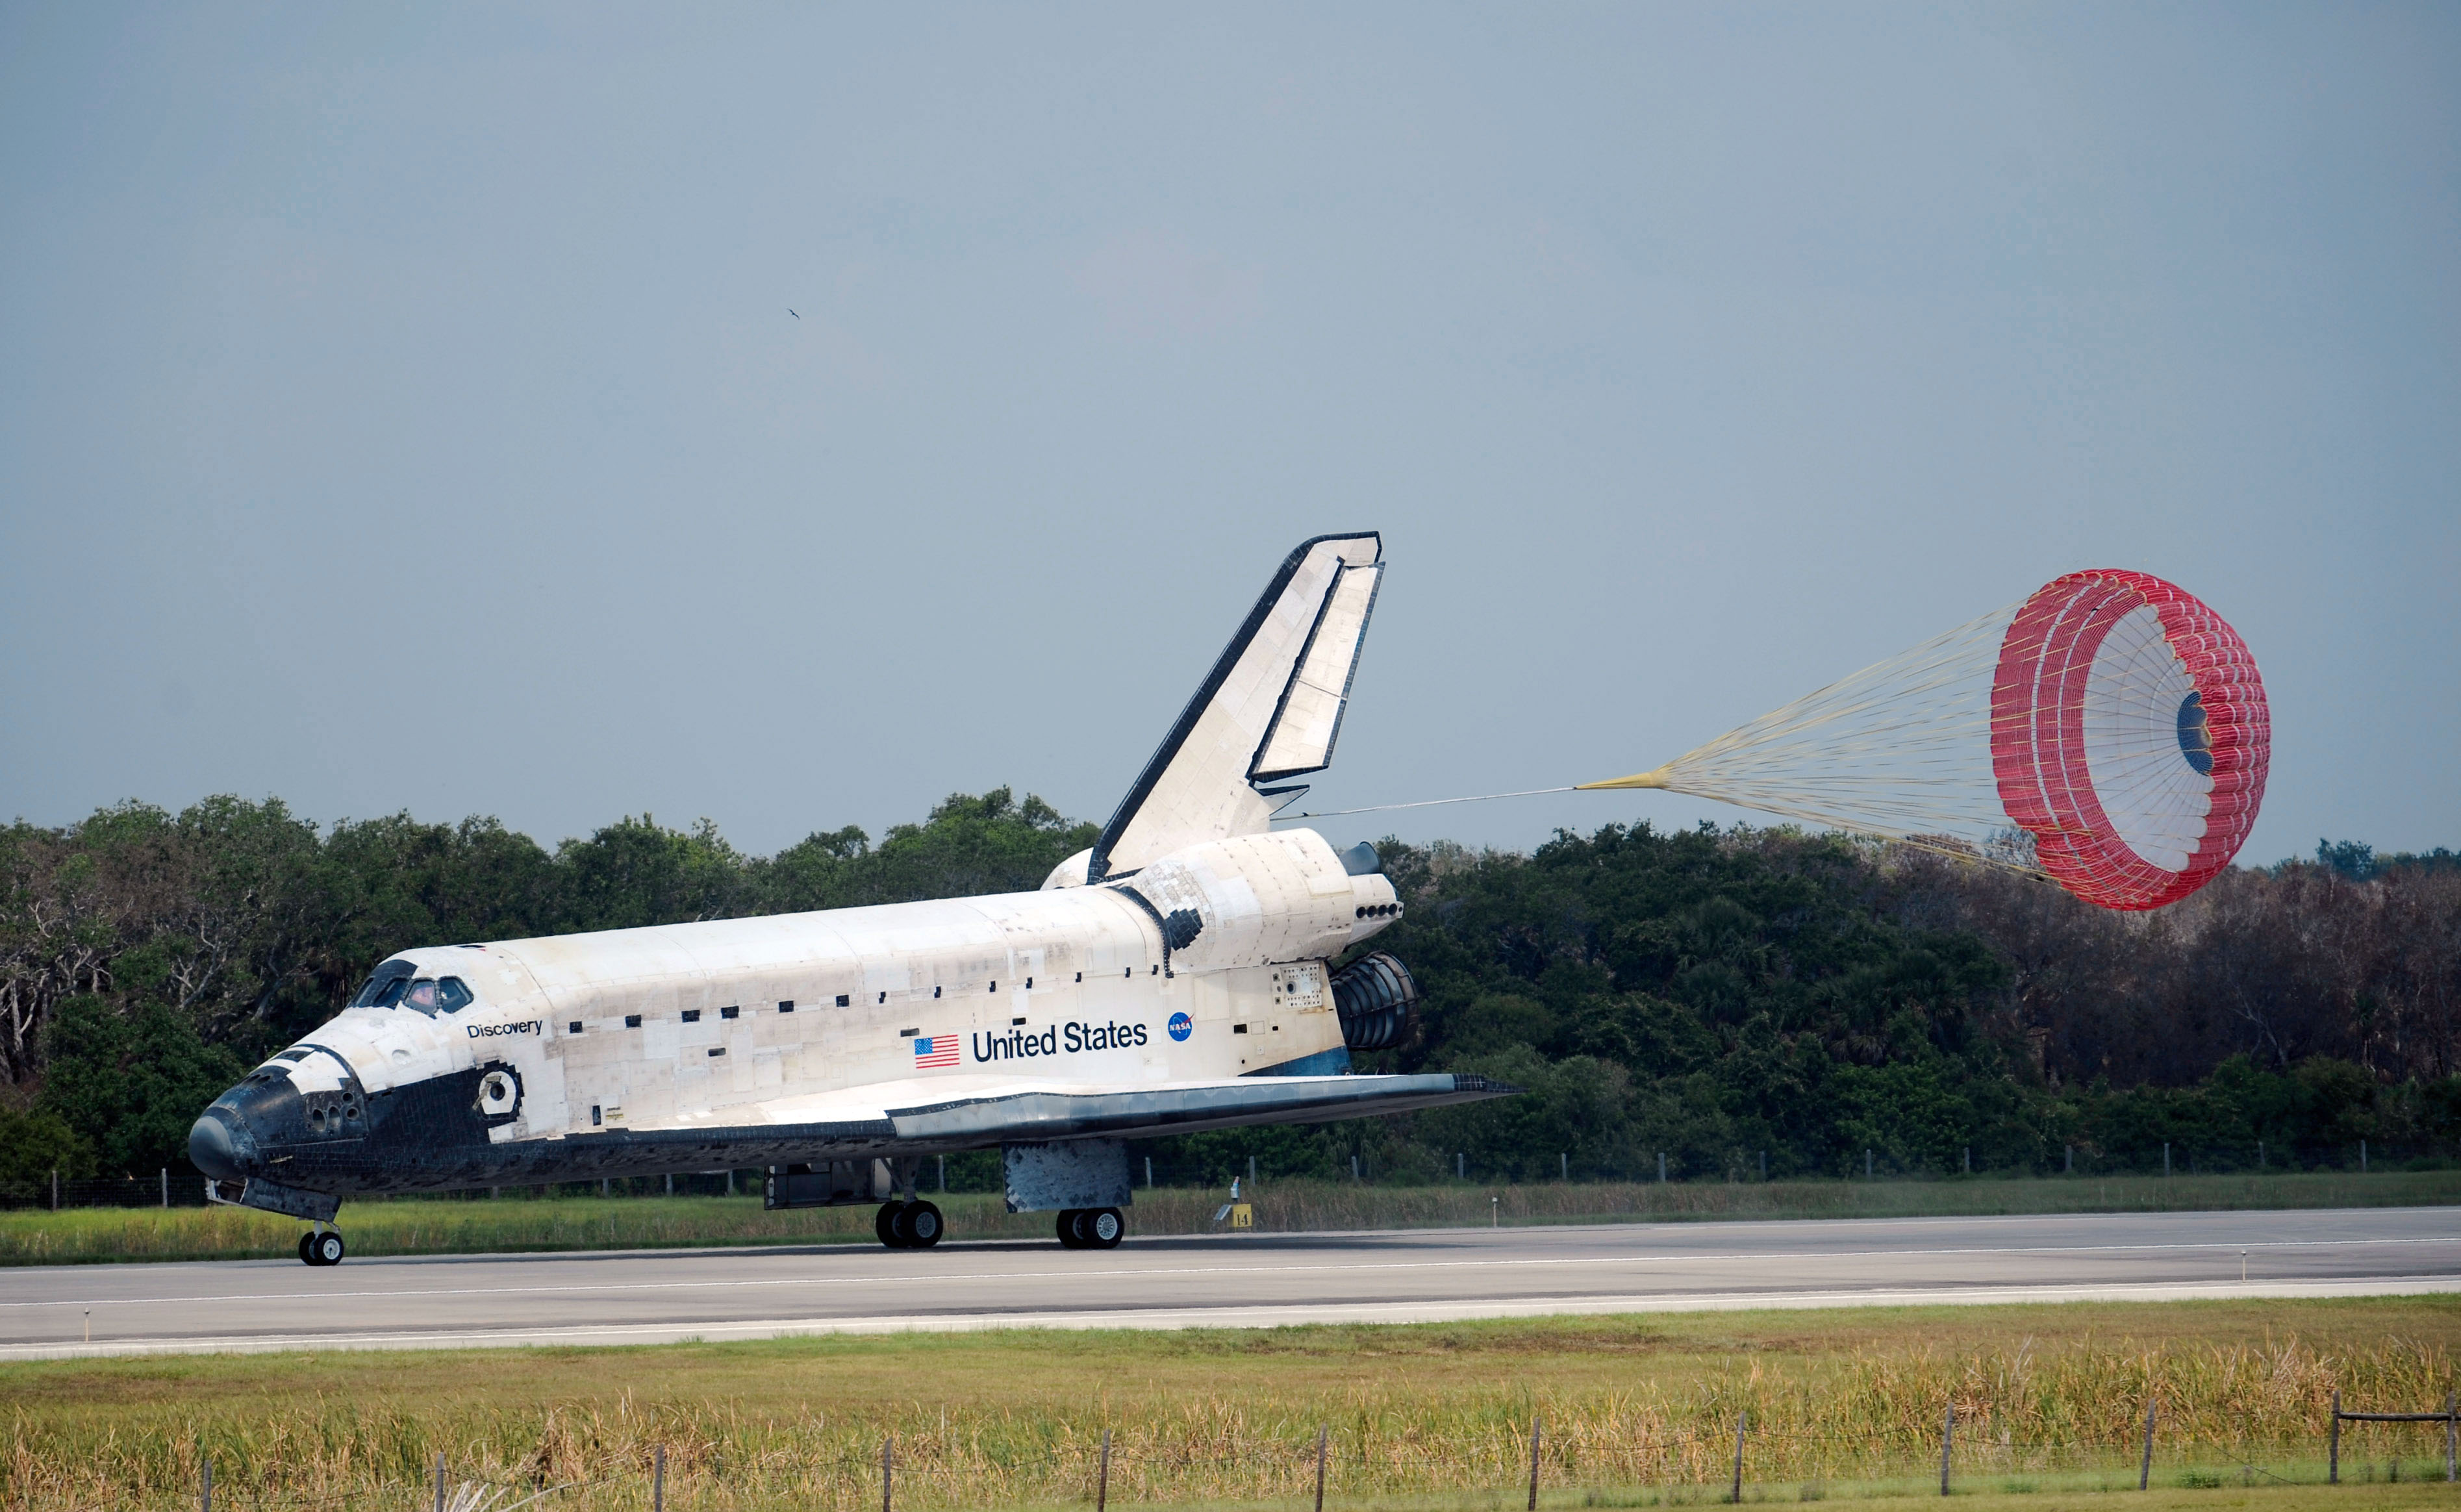 File:Space Shuttle Discovery Landing after STS-124.jpg - Wikimedia ...